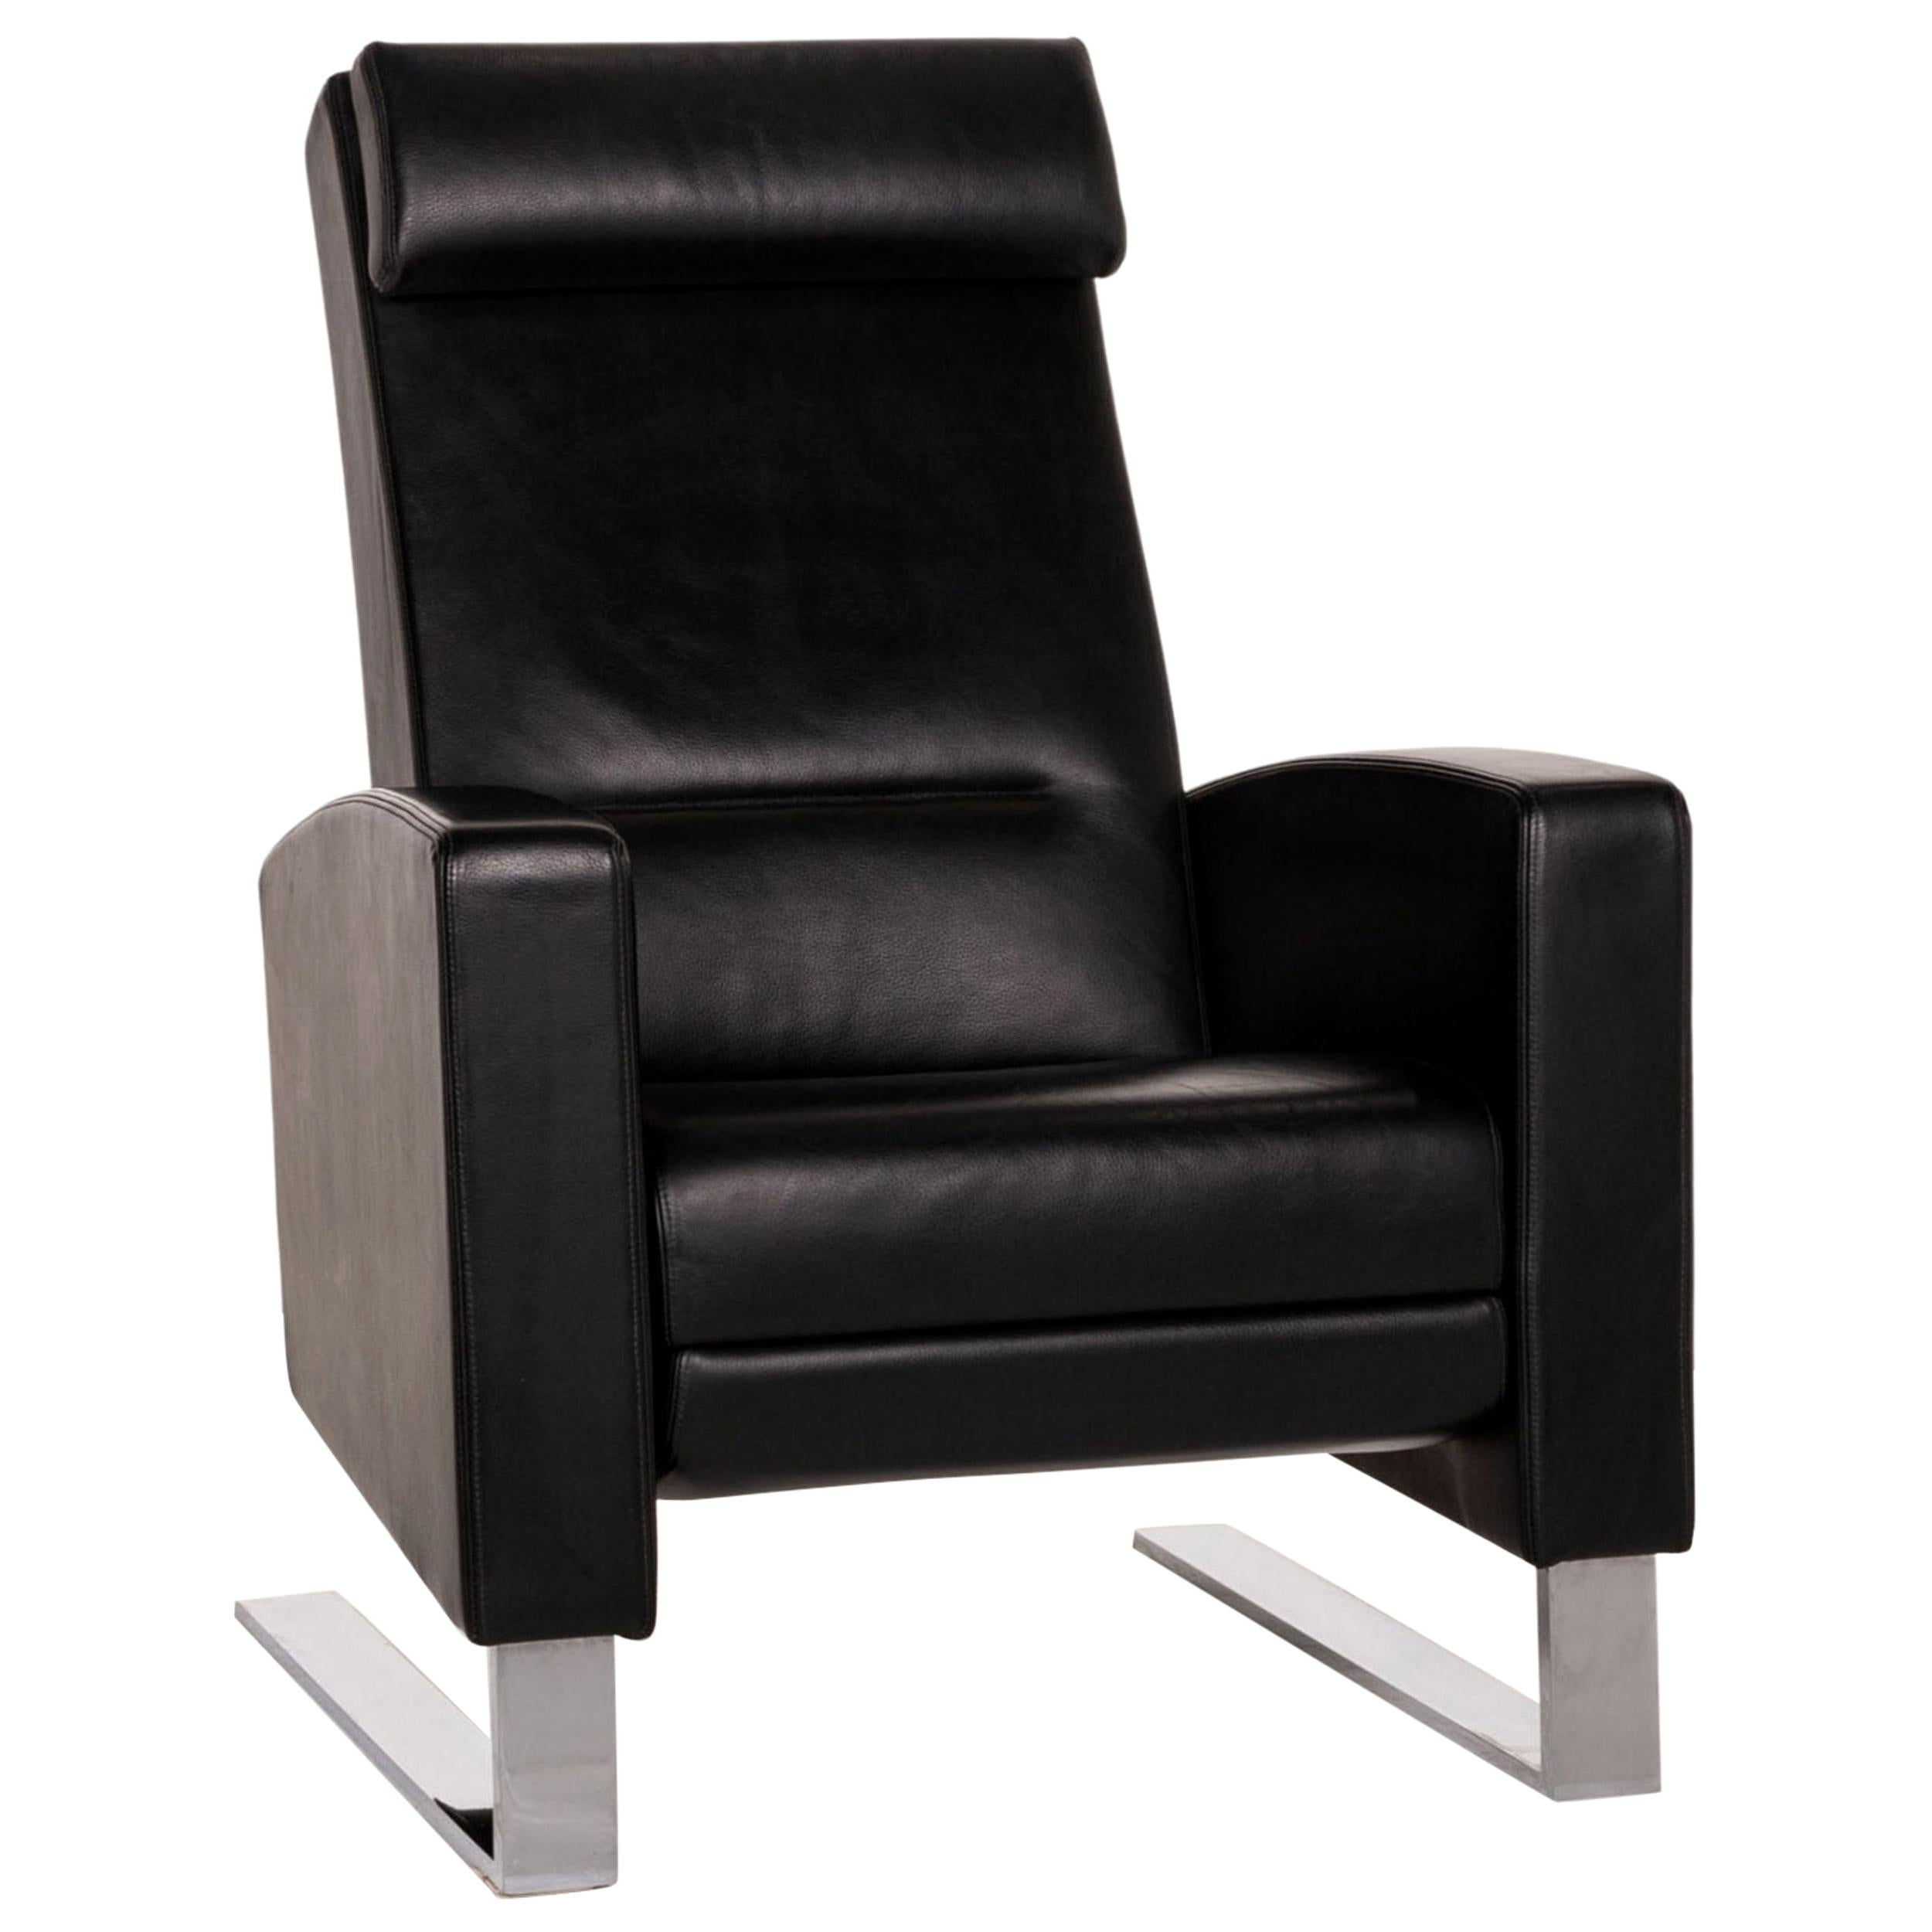 Wittmann Lindberg Leather Armchair Black Relaxation Function Incl. Pillow